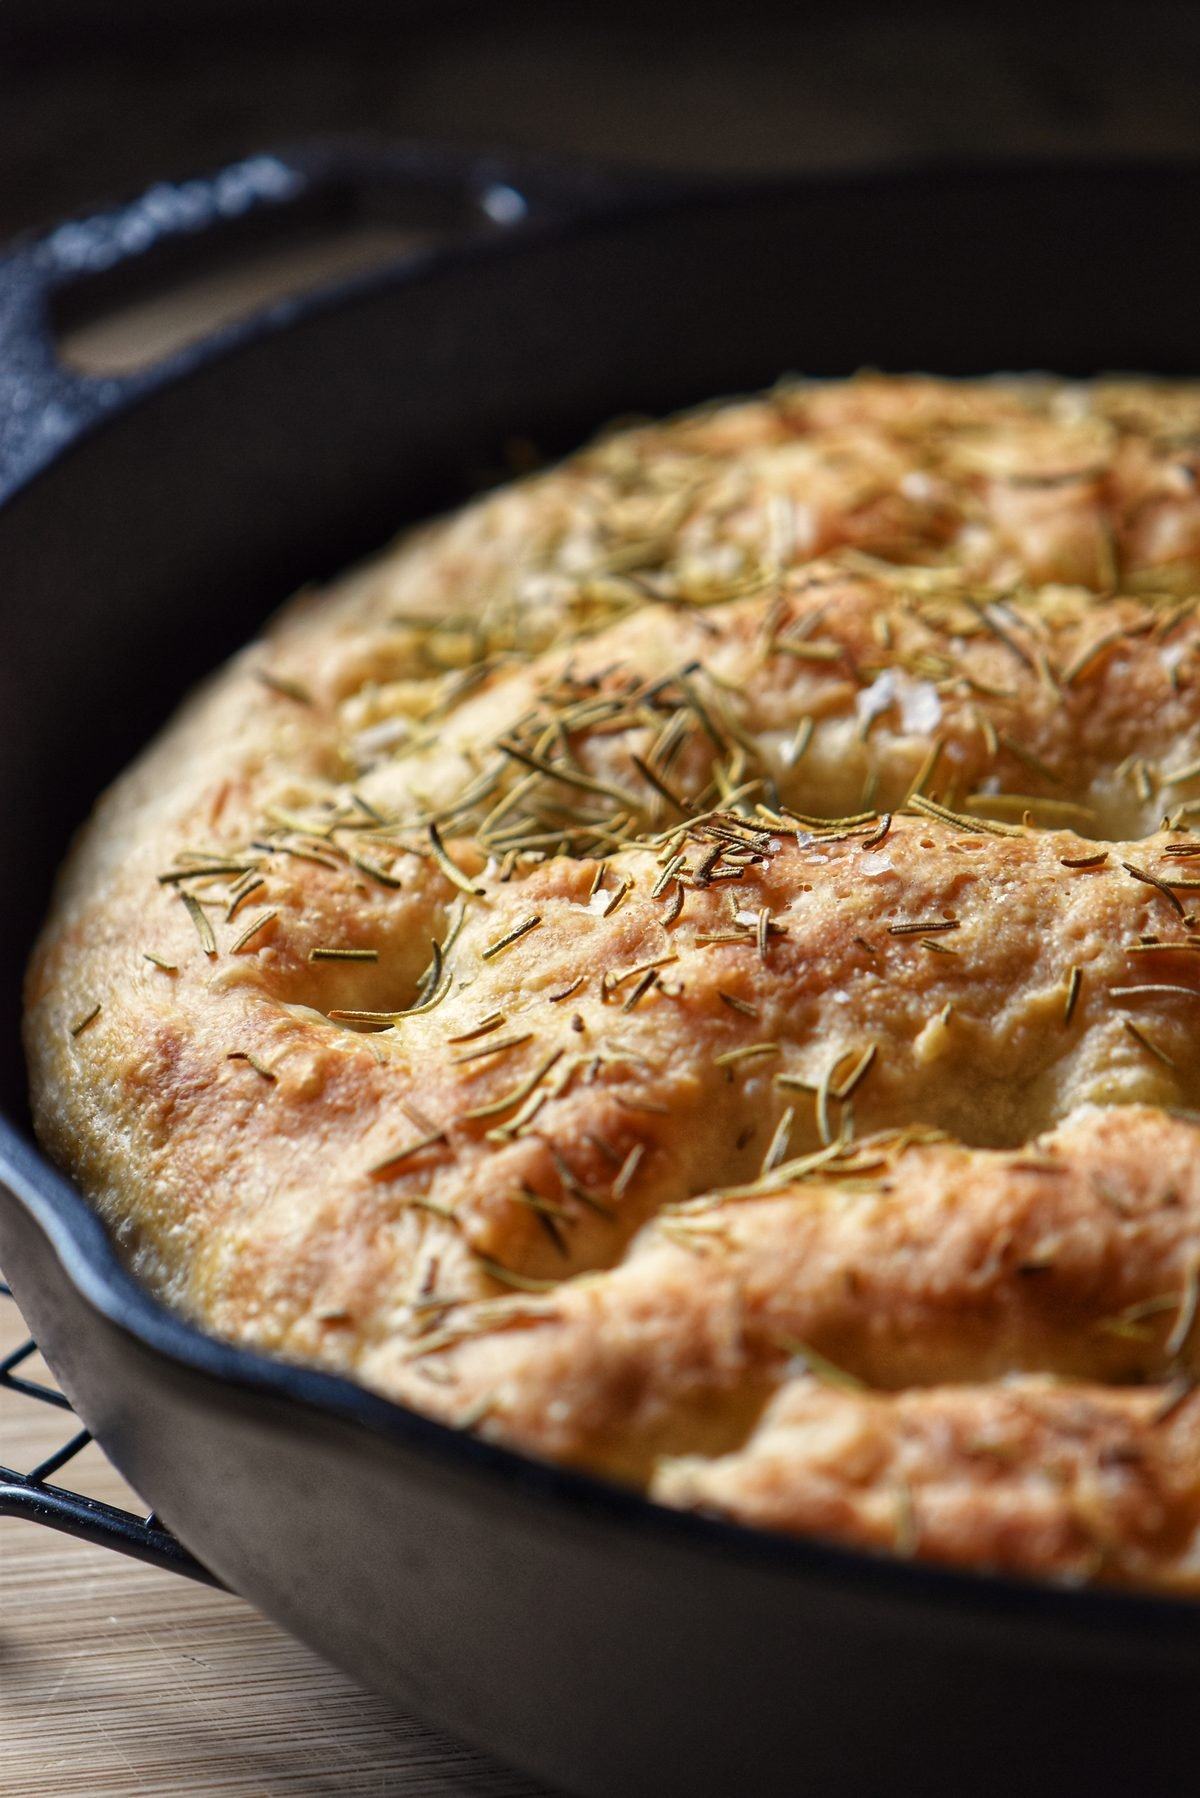 Cast iron focaccia dough garnished with rosemary.